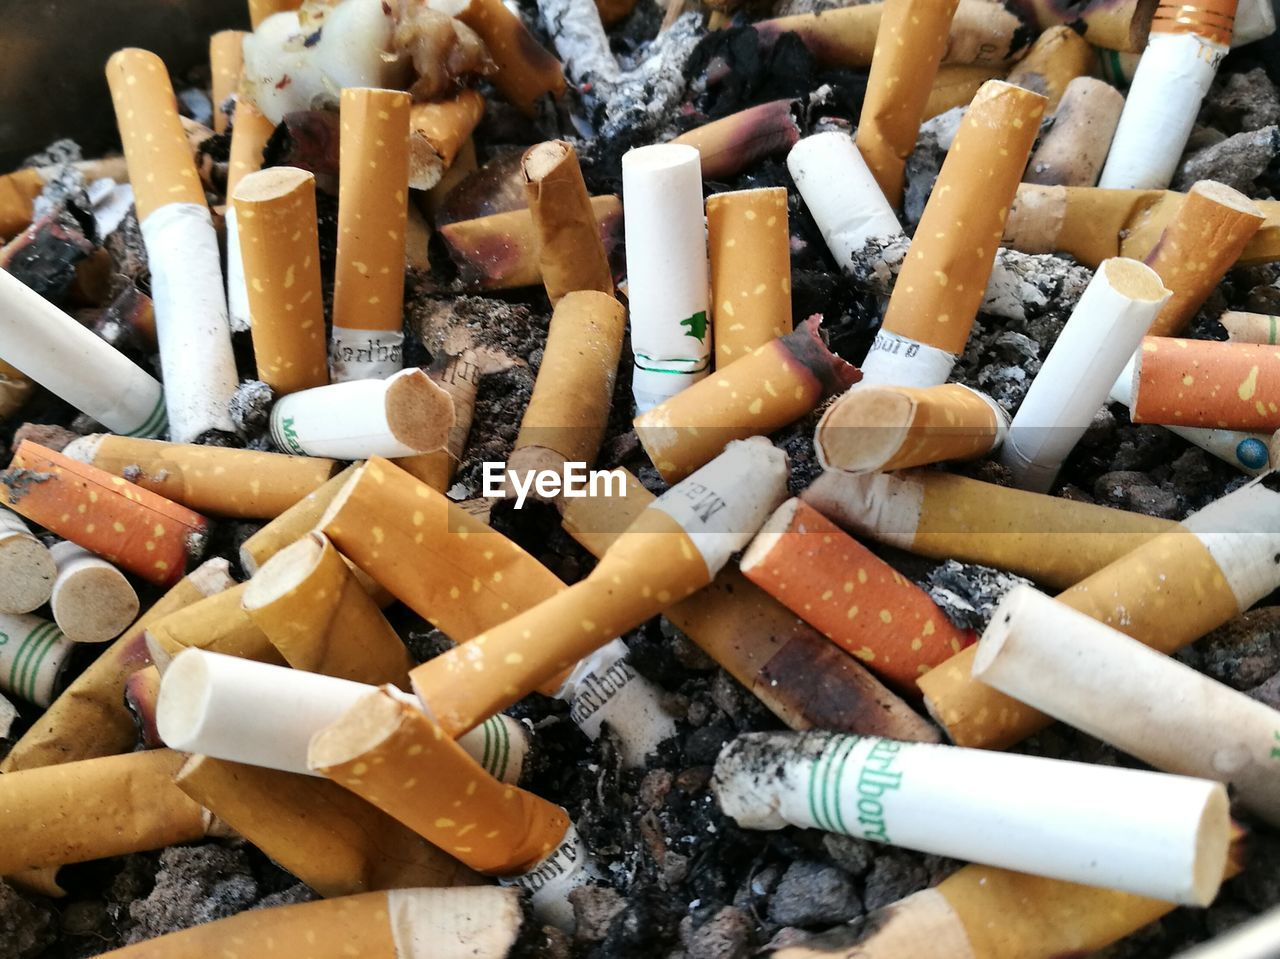 cigarette butt, smoking issues, cigarette, addiction, bad habit, danger, risk, ashtray, social issues, ash, burnt, tobacco product, large group of objects, close-up, smoke - physical structure, unhygienic, excess, backgrounds, no people, burning, smoking - activity, fumes, outdoors, day